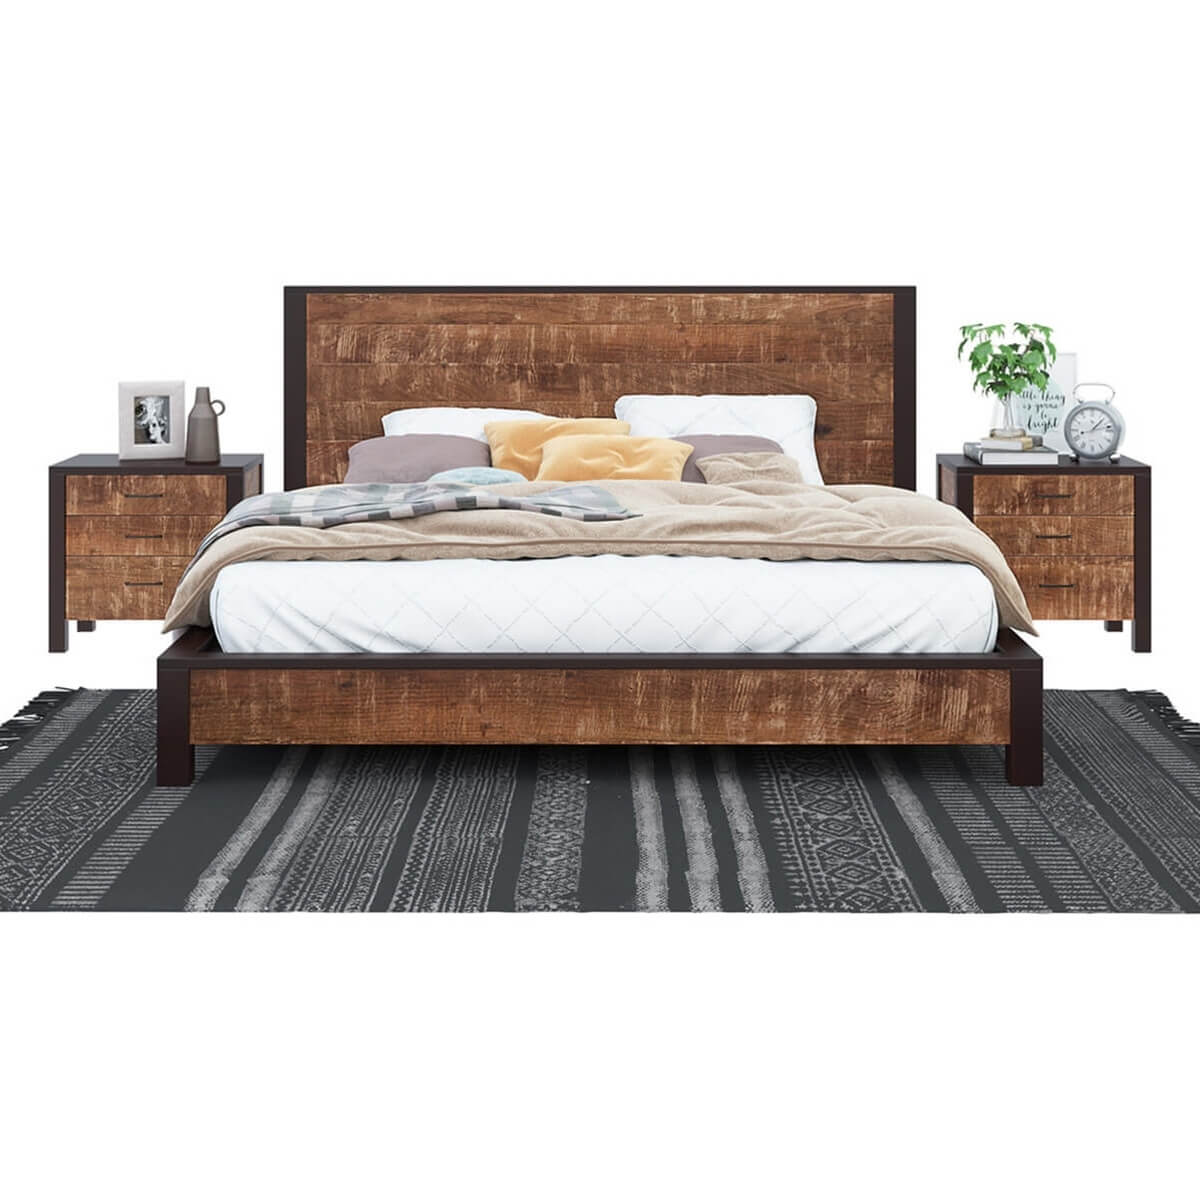 new orleans solid wood platform bed frame w headboard and footboard. Black Bedroom Furniture Sets. Home Design Ideas